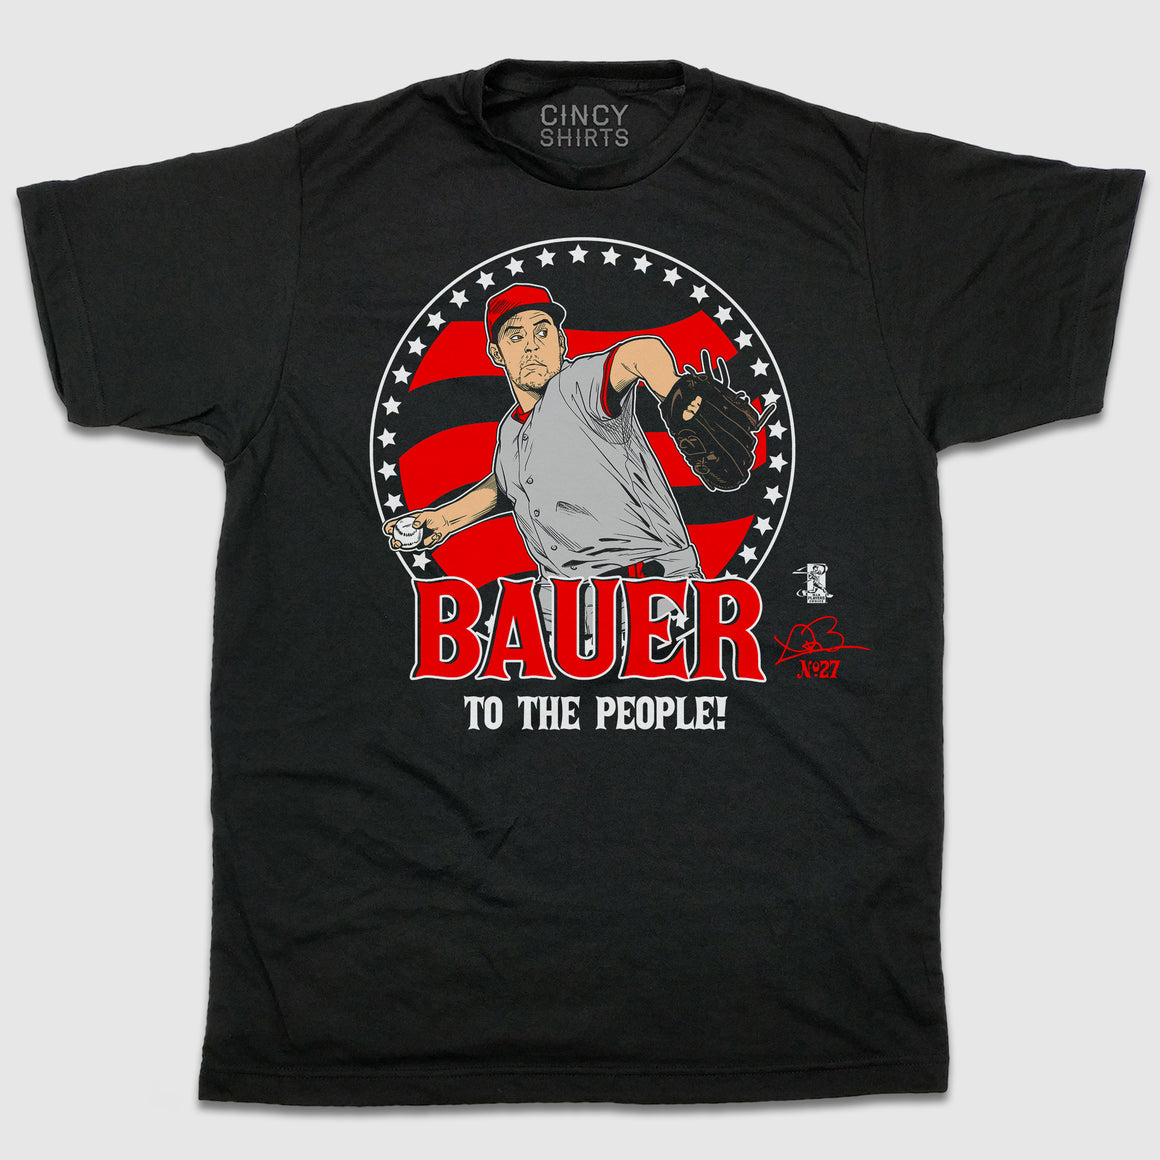 Bauer To The People - Cincy Shirts